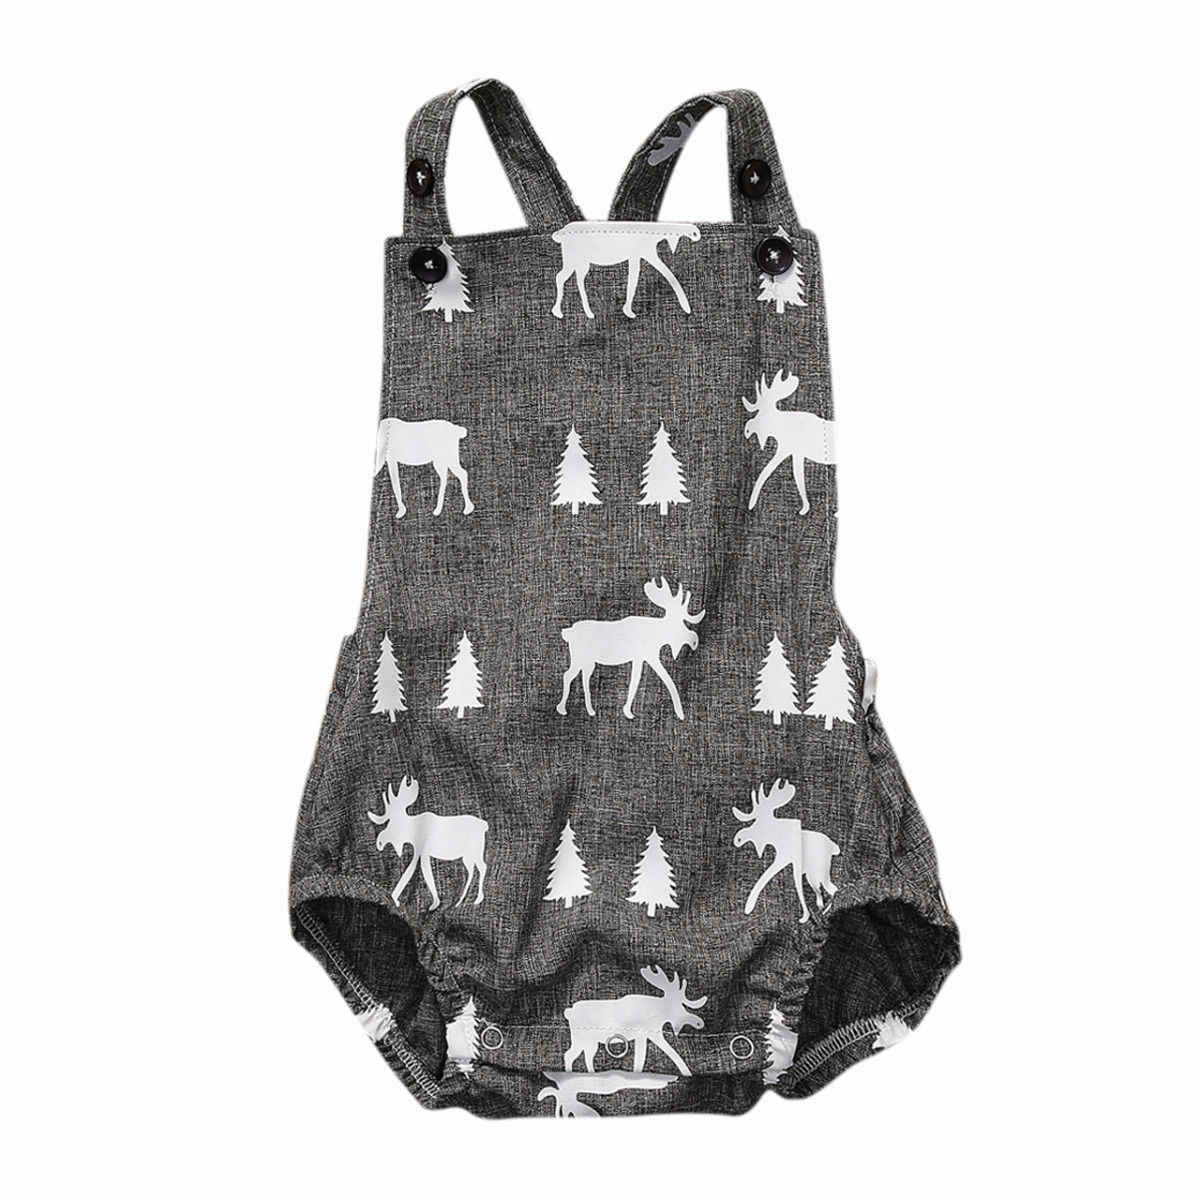 Cute Baby Romper Newborn Baby Boy Girl Fawn Clothes Sleeveless Deer Playsuit Romper Jumpsuit Outfit Sunsuit  0-2Y